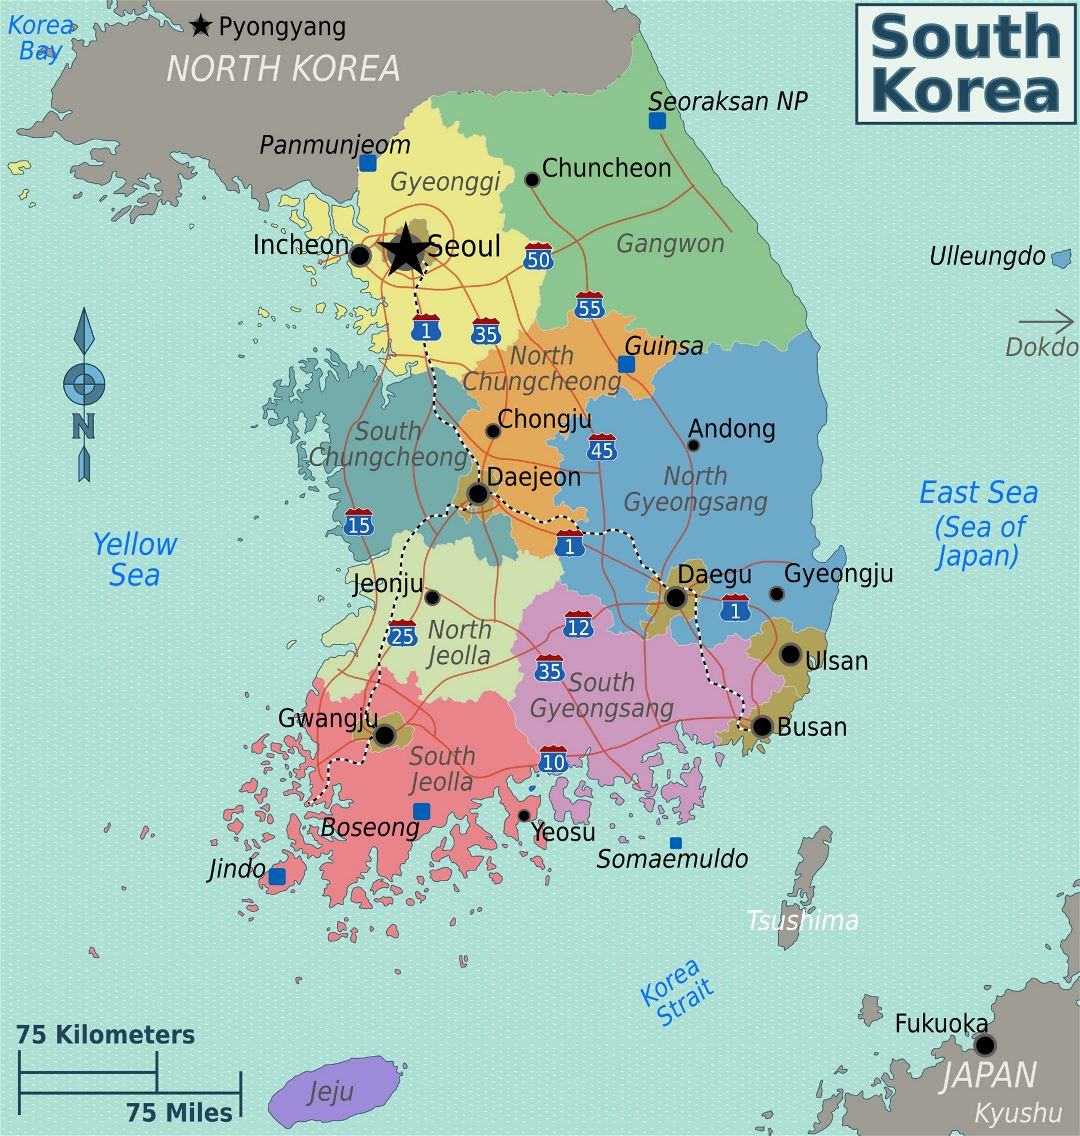 Large regions map of South Korea